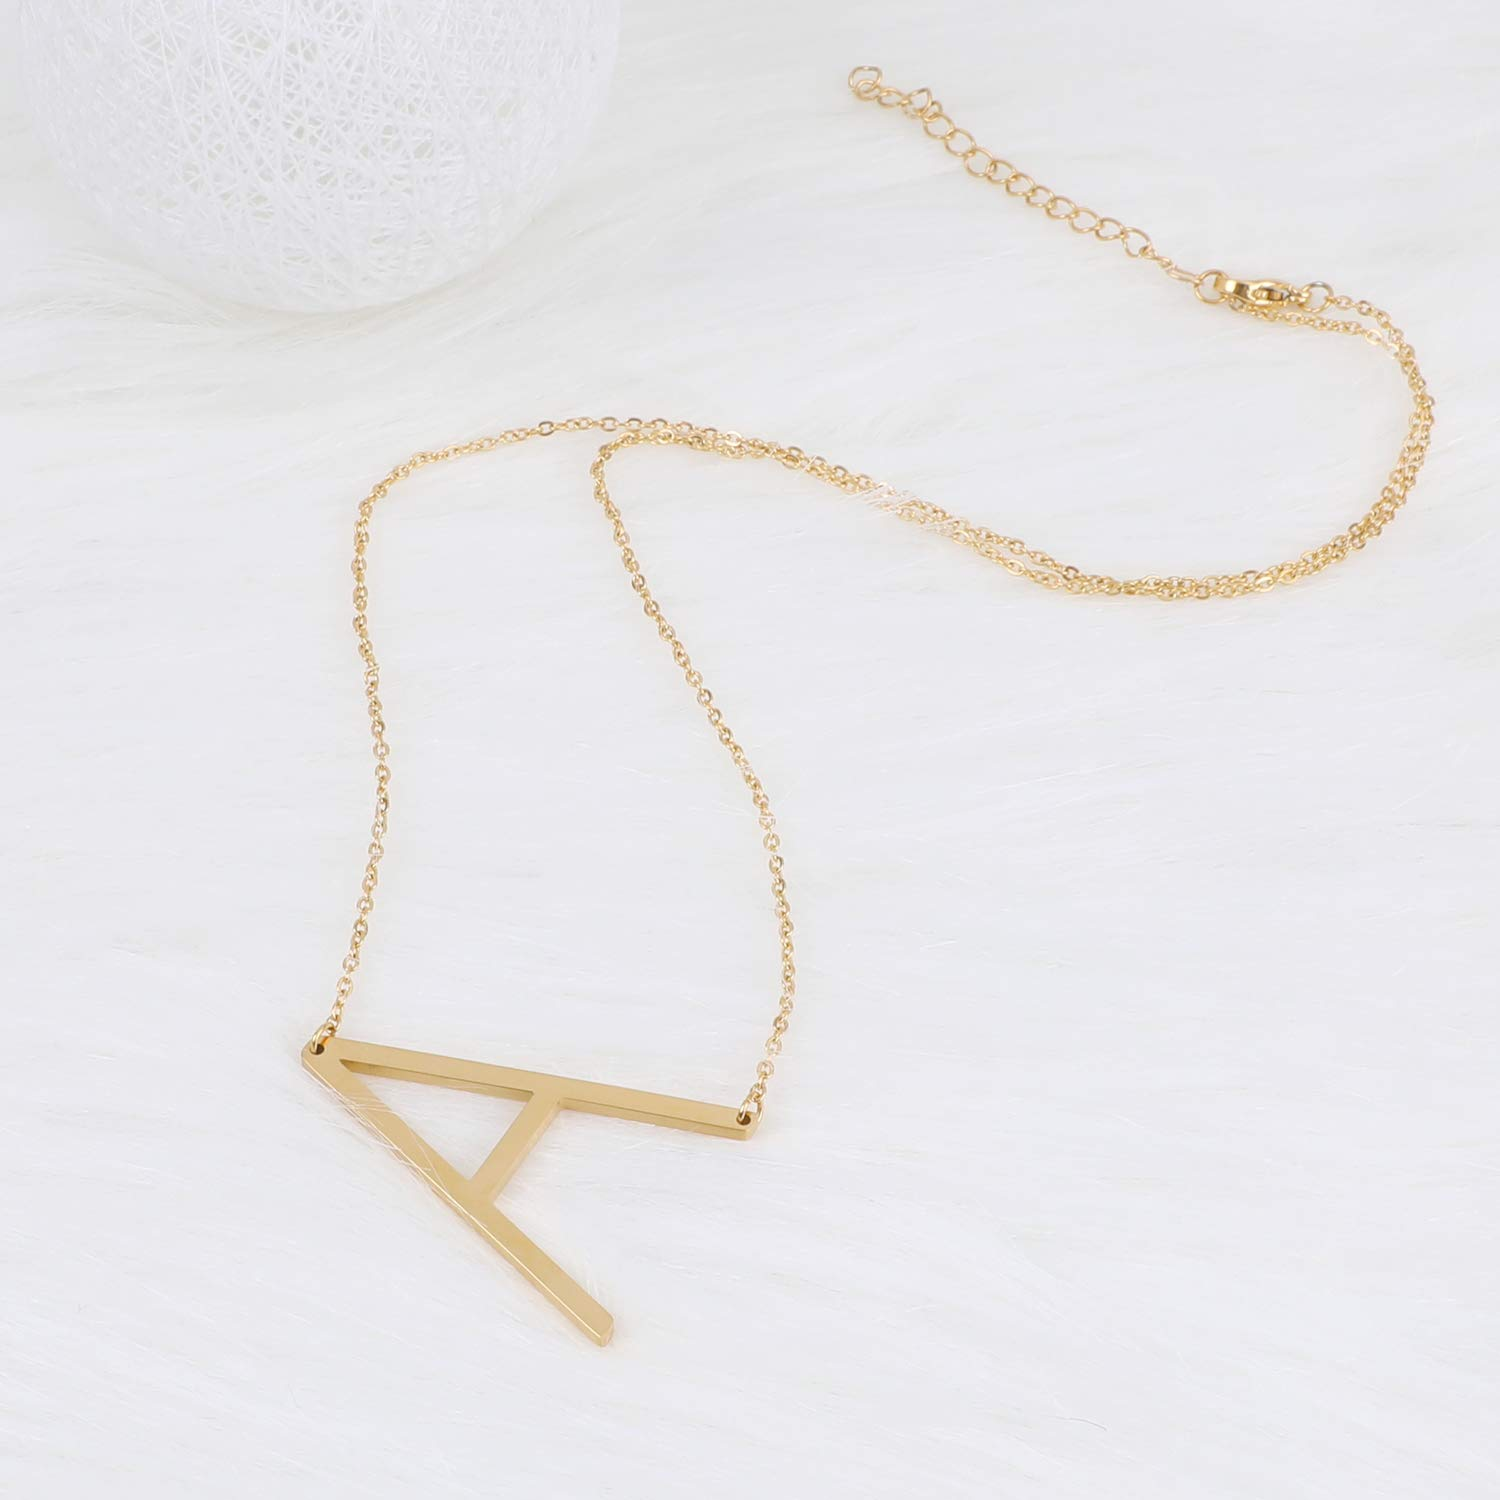 BALTEUS Initial Necklace for Women Girls Gold Stainless Steel Necklace Sideways Letters Pendant Best Firends (Gold A)